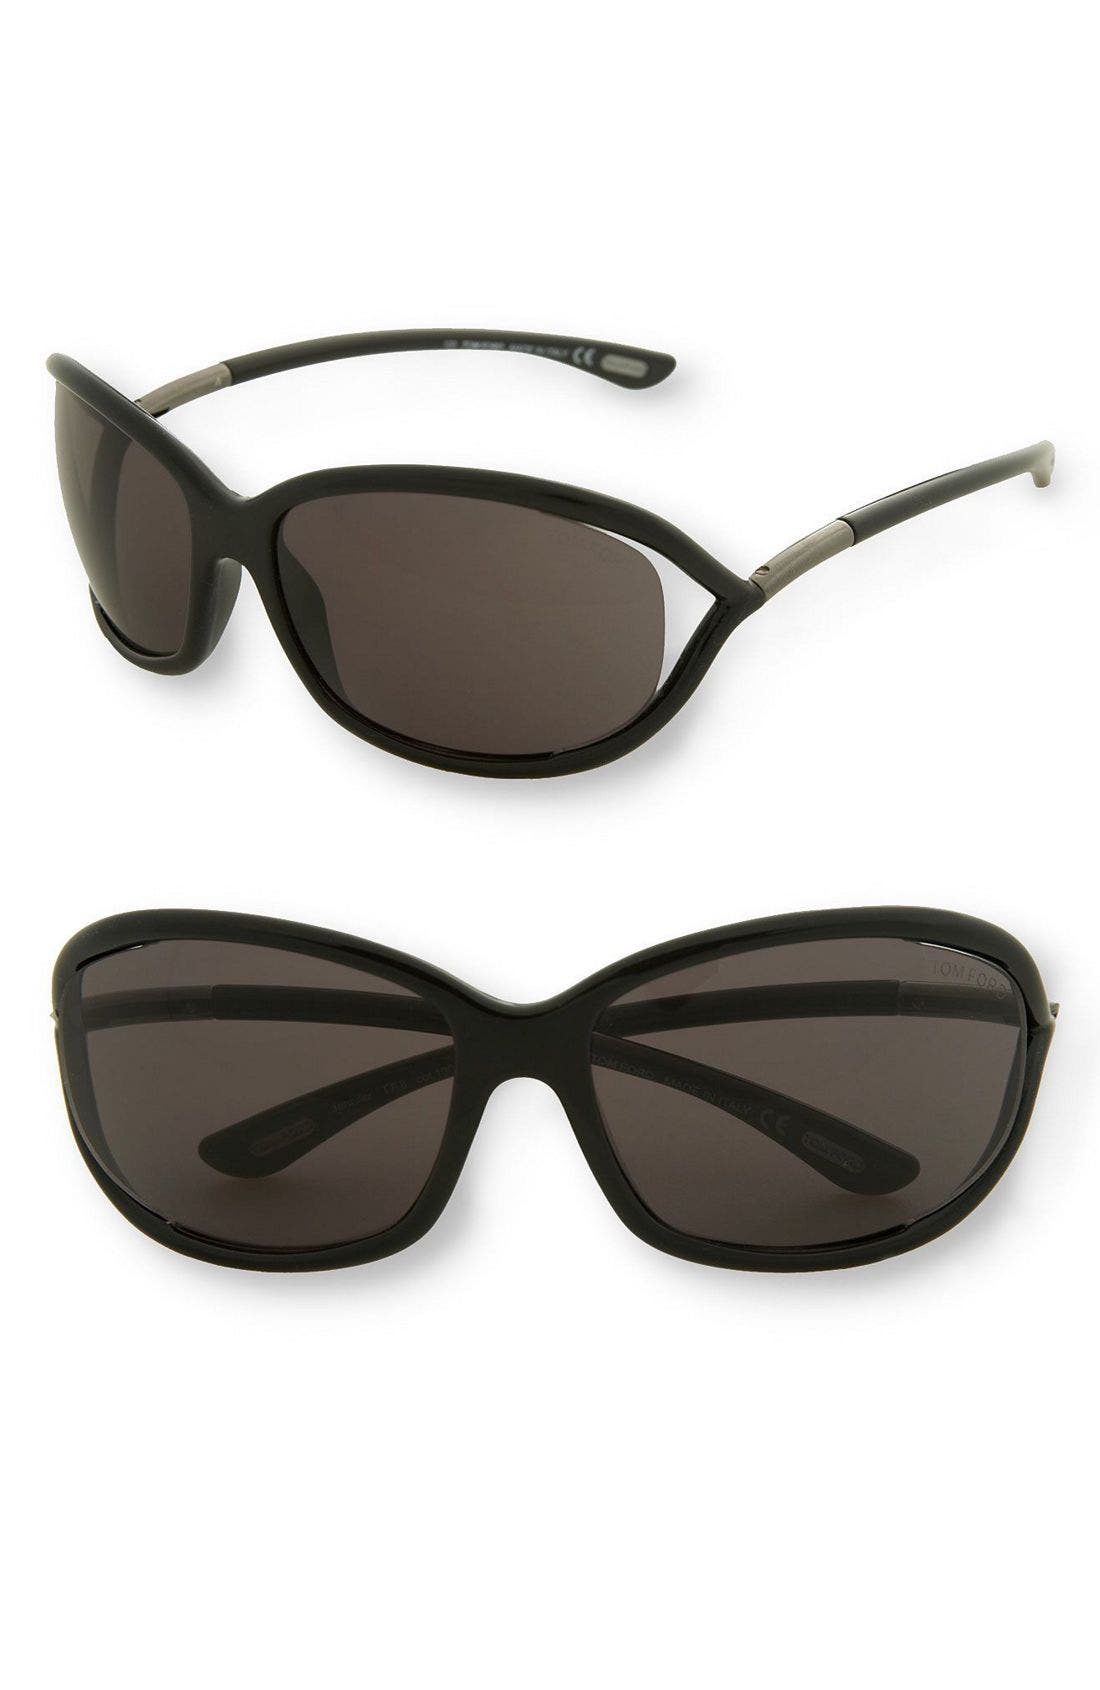 Alternate Image 1 Selected - Tom Ford 'Jennifer' 61mm Oval Oversize Frame Sunglasses